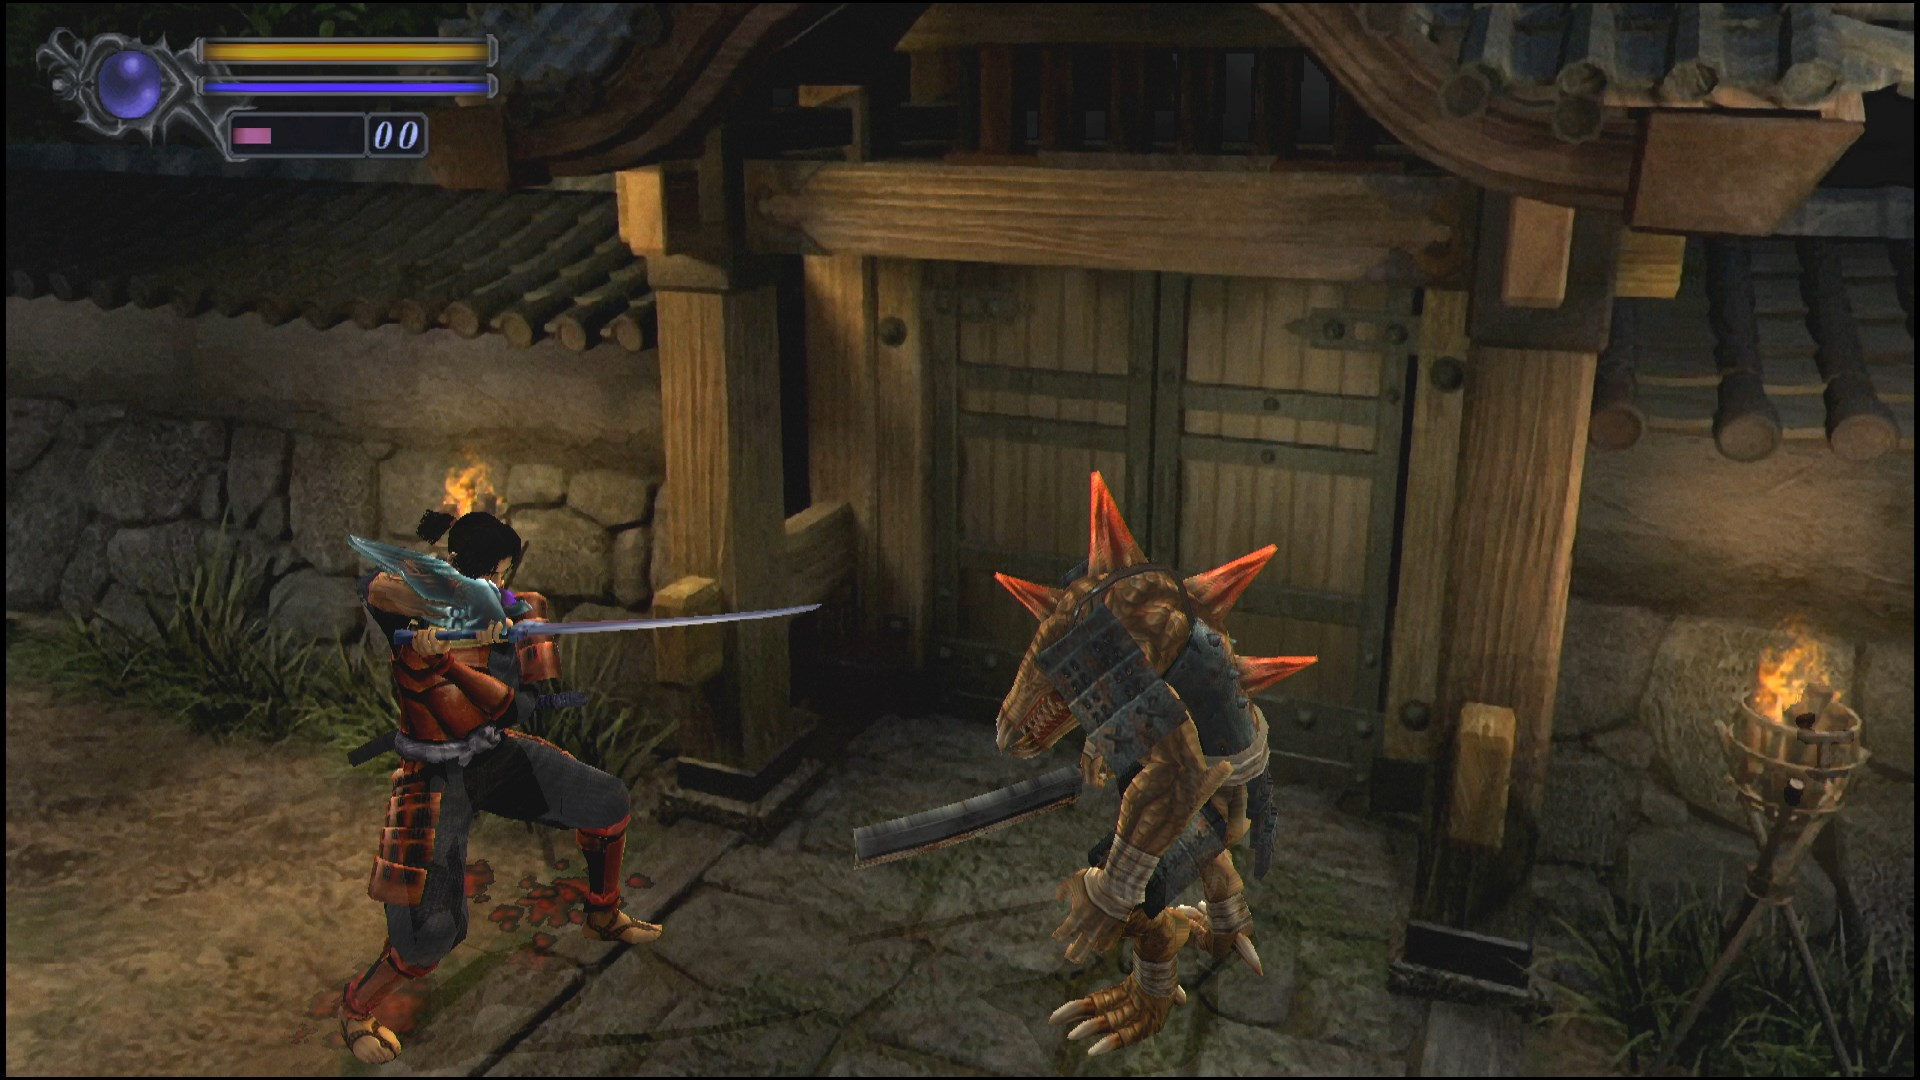 Play Warlords 2 Online